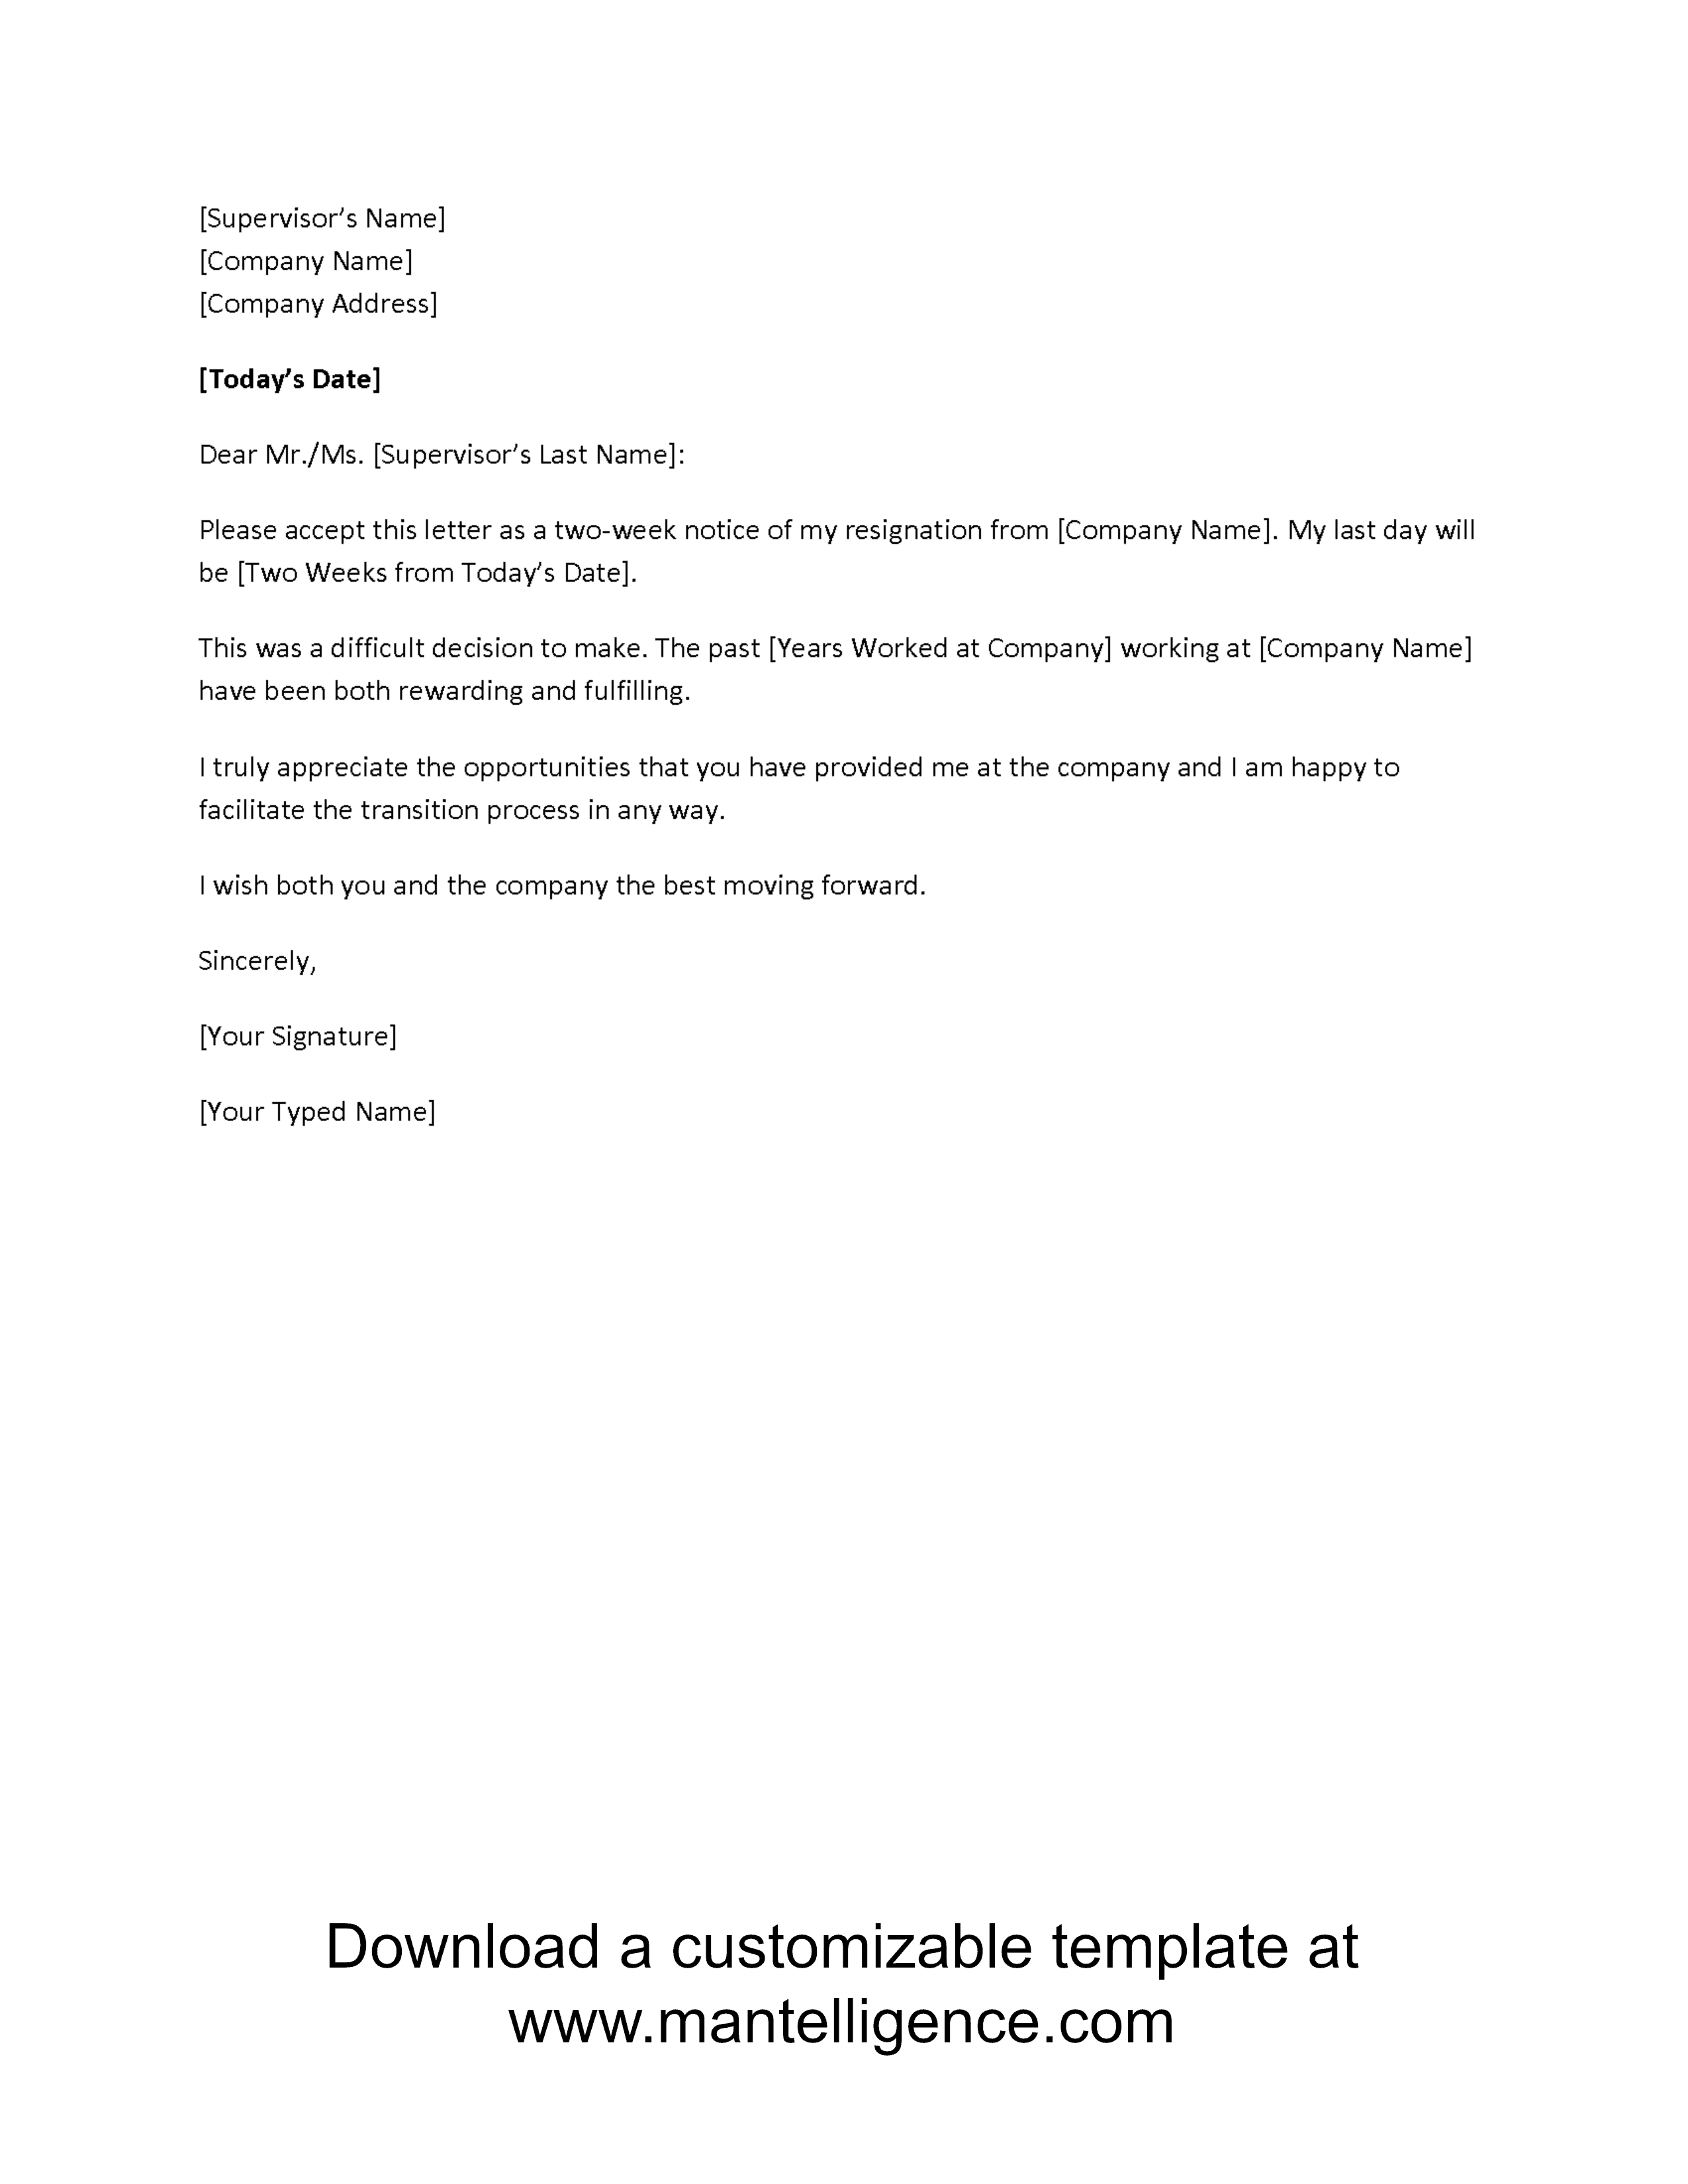 22 Highly Professional Two Weeks Notice Letter Templates  Letter